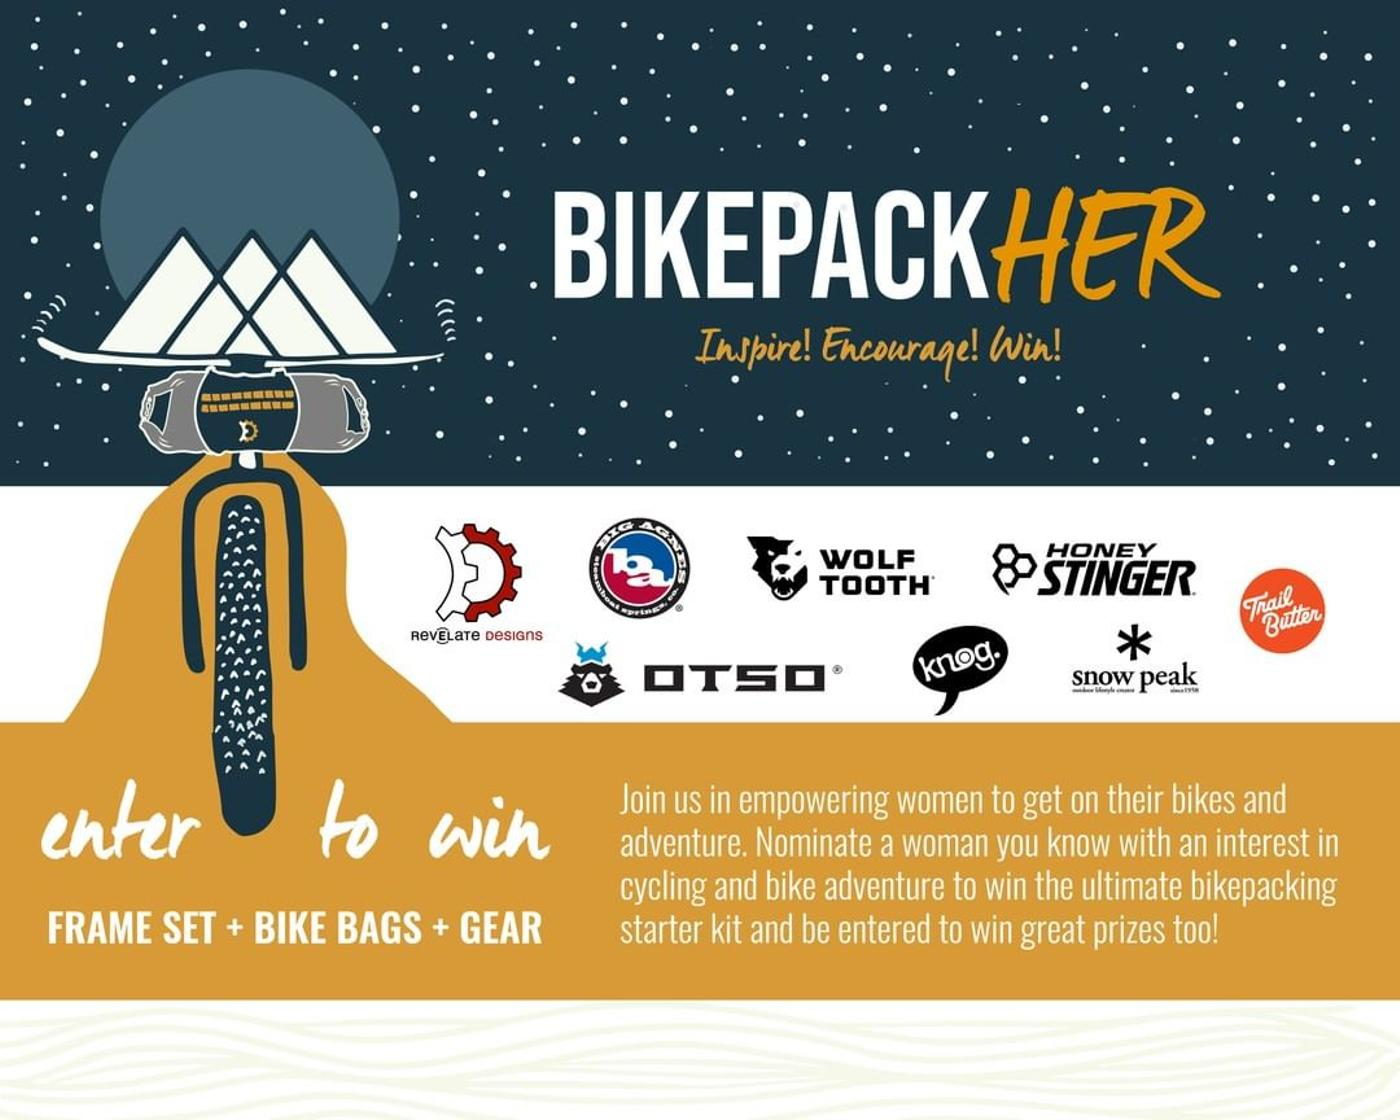 Nominate Your W/T/F Shred Friend for the Revelate Designs BikepackHER Giveaway!